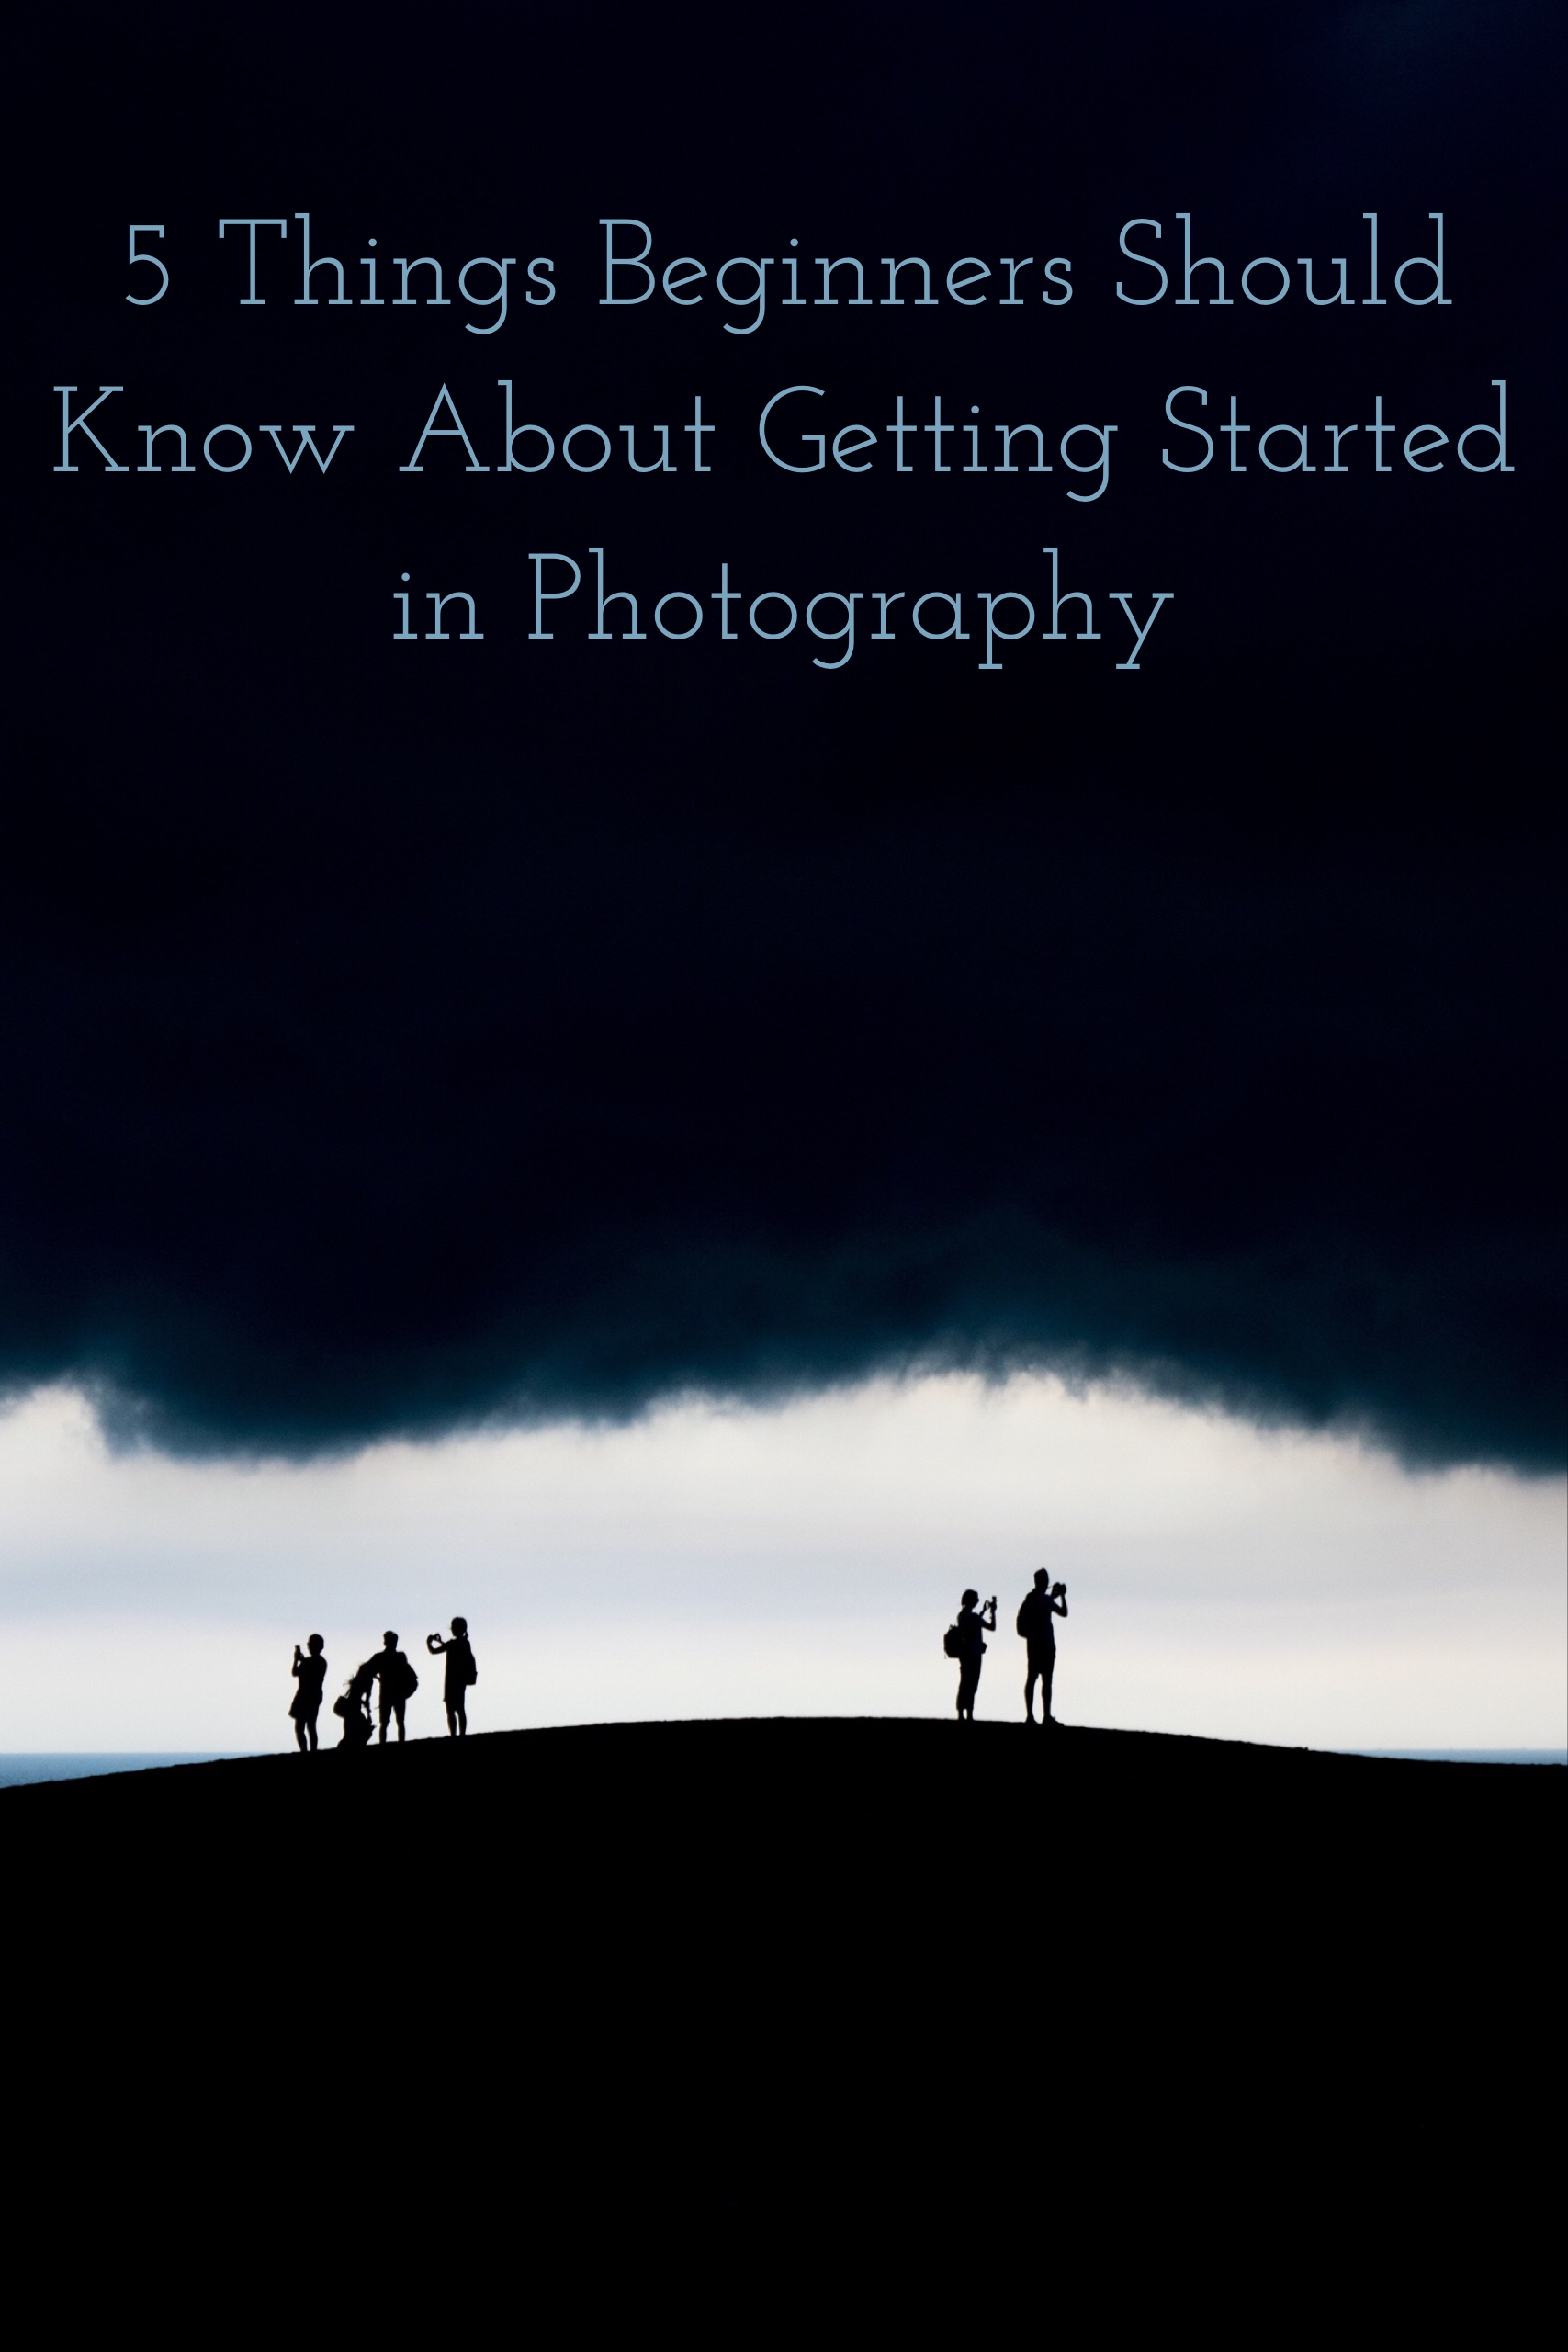 5 Things Newbies Should Know About Getting Started in Photography